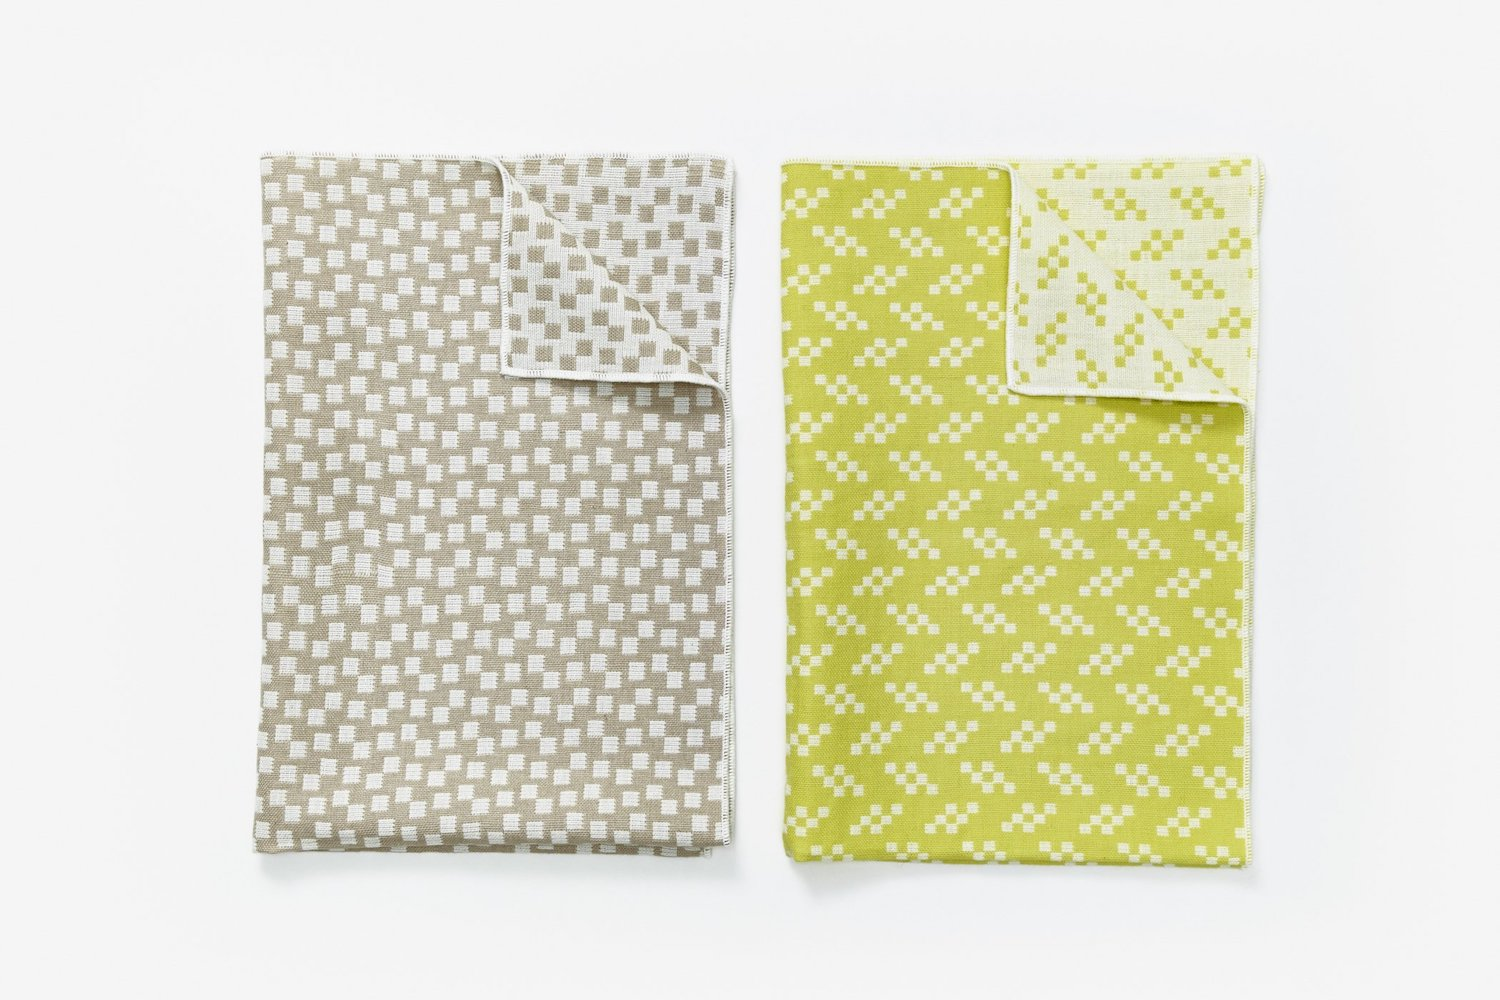 Tea Towels - Bits/Static - Set of 2 - Color